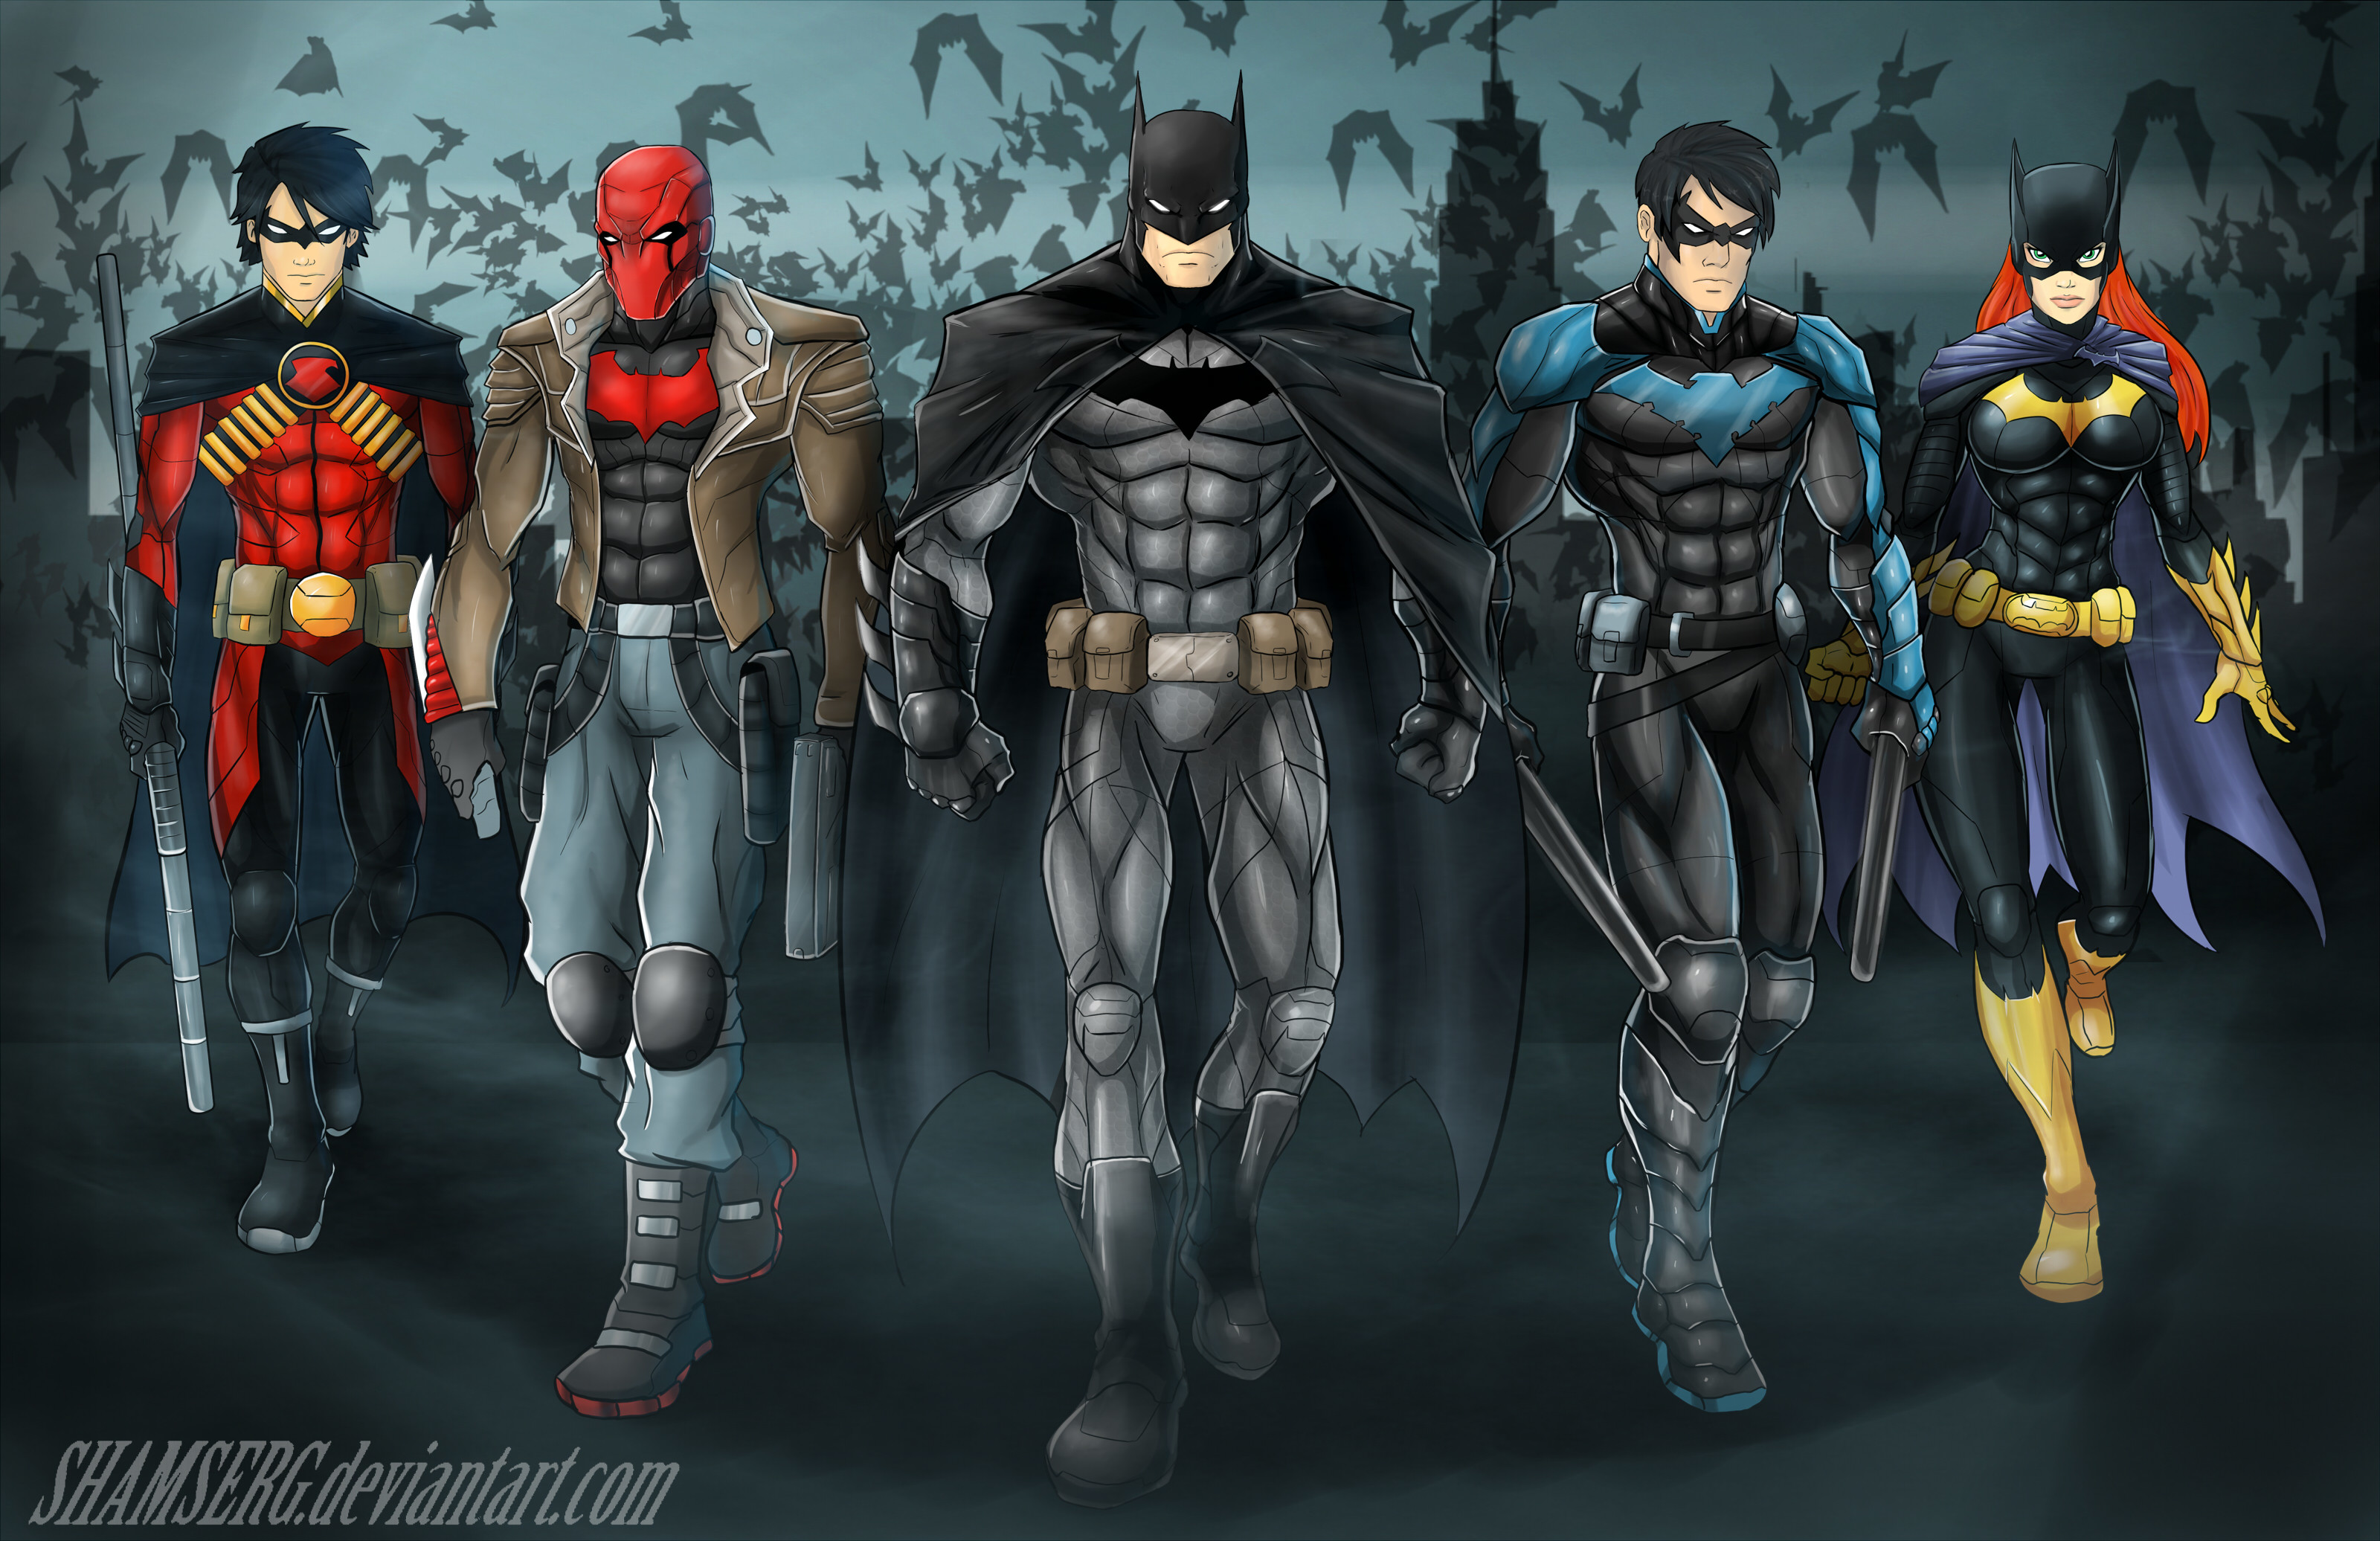 Cute Wallpapers For Samsung Grand Prime Top Photo Of Wallpaper Batman Family Pic Gt Gt Gt Best